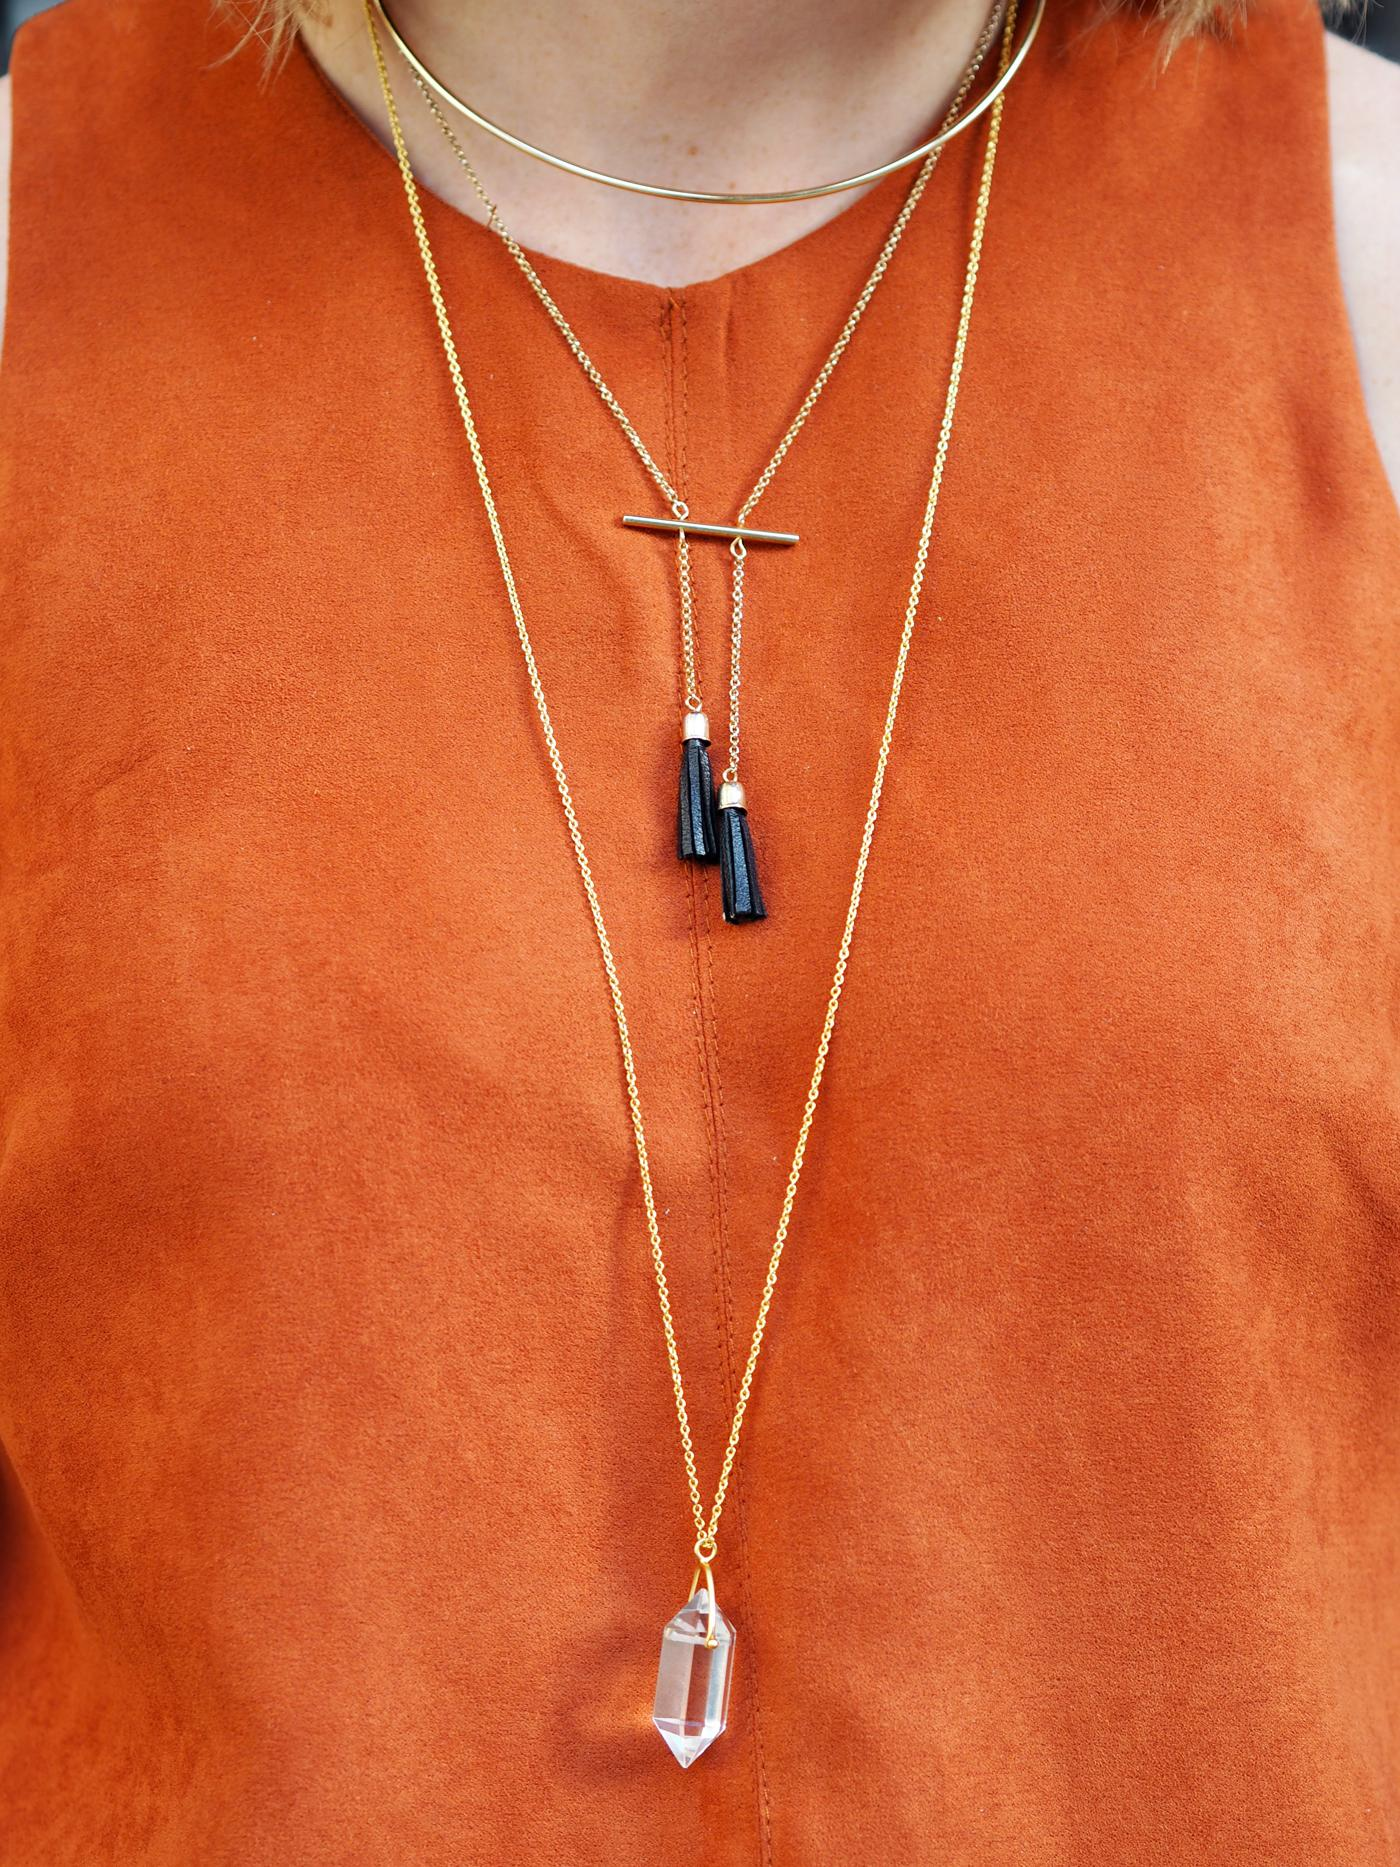 Z-COLLECTION-NECKLACE